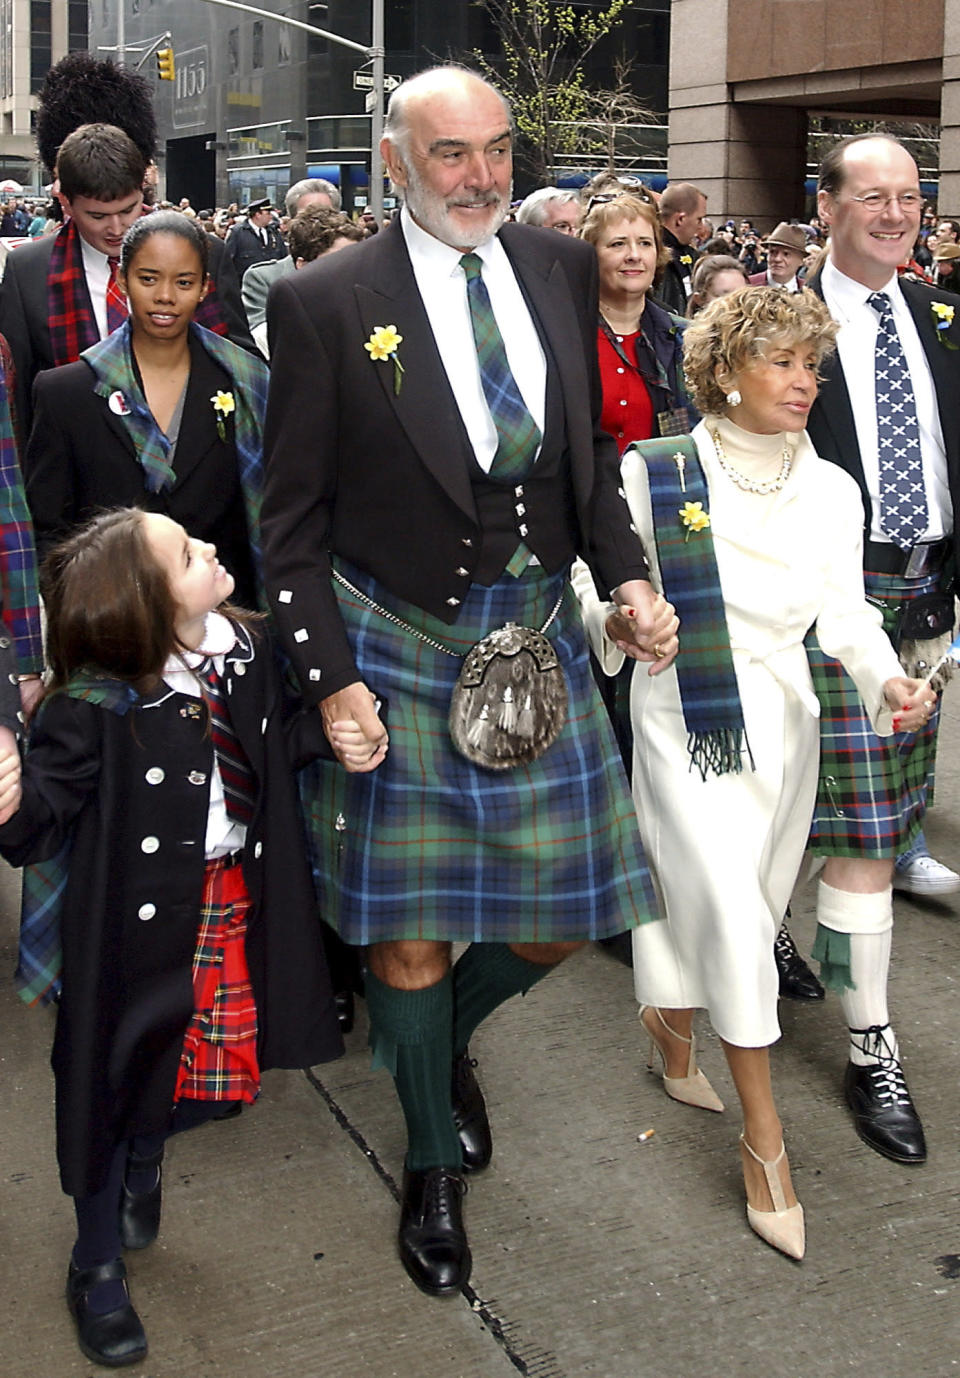 FILE - In this file photo dated Saturday, April 6, 2002, Scottish actor Sean Connery, center, leads a procession up New York's Sixth Avenue as part of a bagpipe band of about 10,000, billed as the world's largest pipe and drum parade. The parade was to benefit cancer victims through the Marie Curie Cancer Care organization, and the New York-based Gilda's Club Worldwide, a support network named after the late actress Gilda Radner. Scottish actor Sean Connery, considered by many to have been the best James Bond, has died aged 90, according to an announcement from his family. (AP Photo/ Stephen Chernin, FILE)